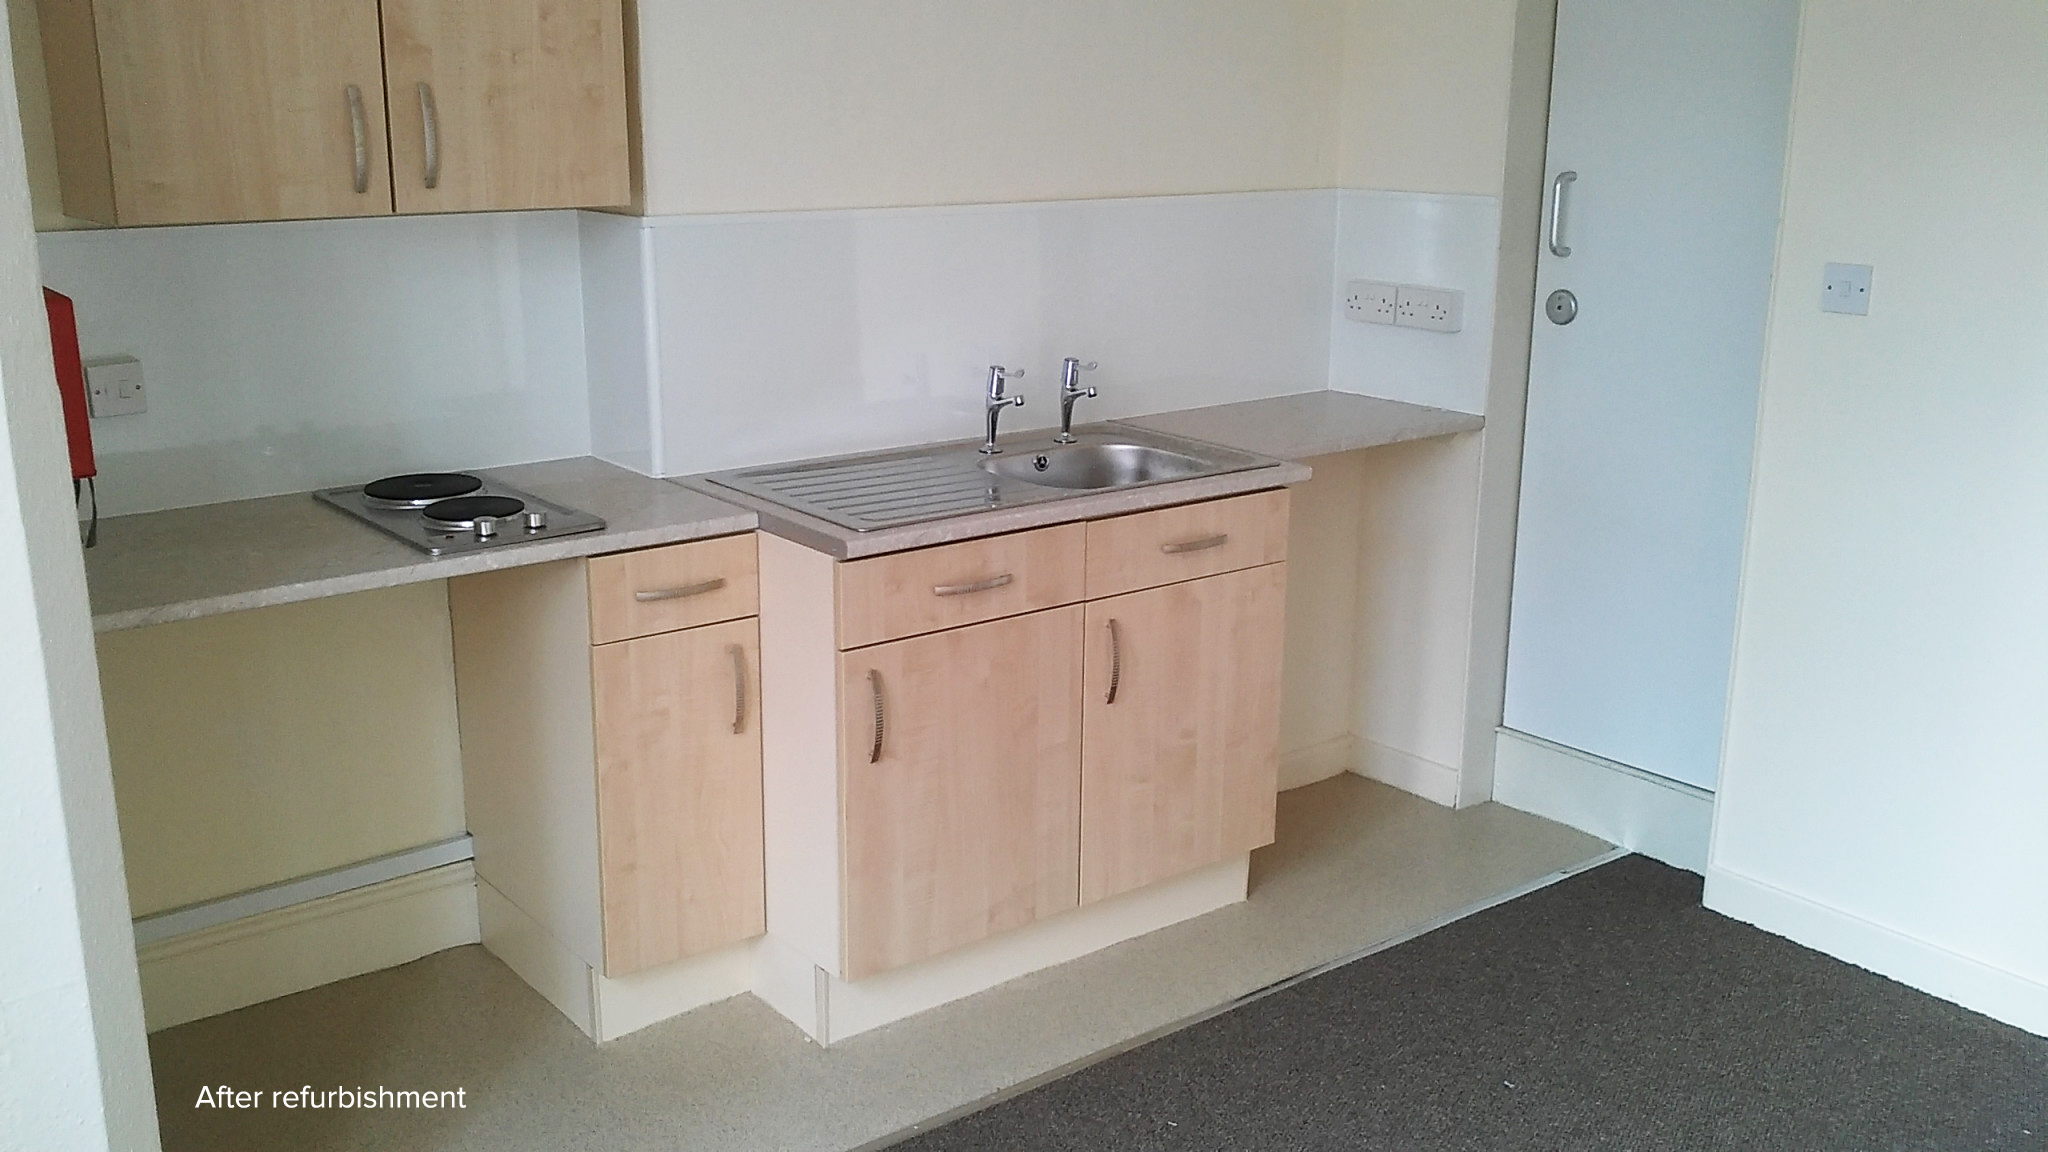 More than bricks and mortar: milestone reached in refurbishment of homeless accommodation in Oxford